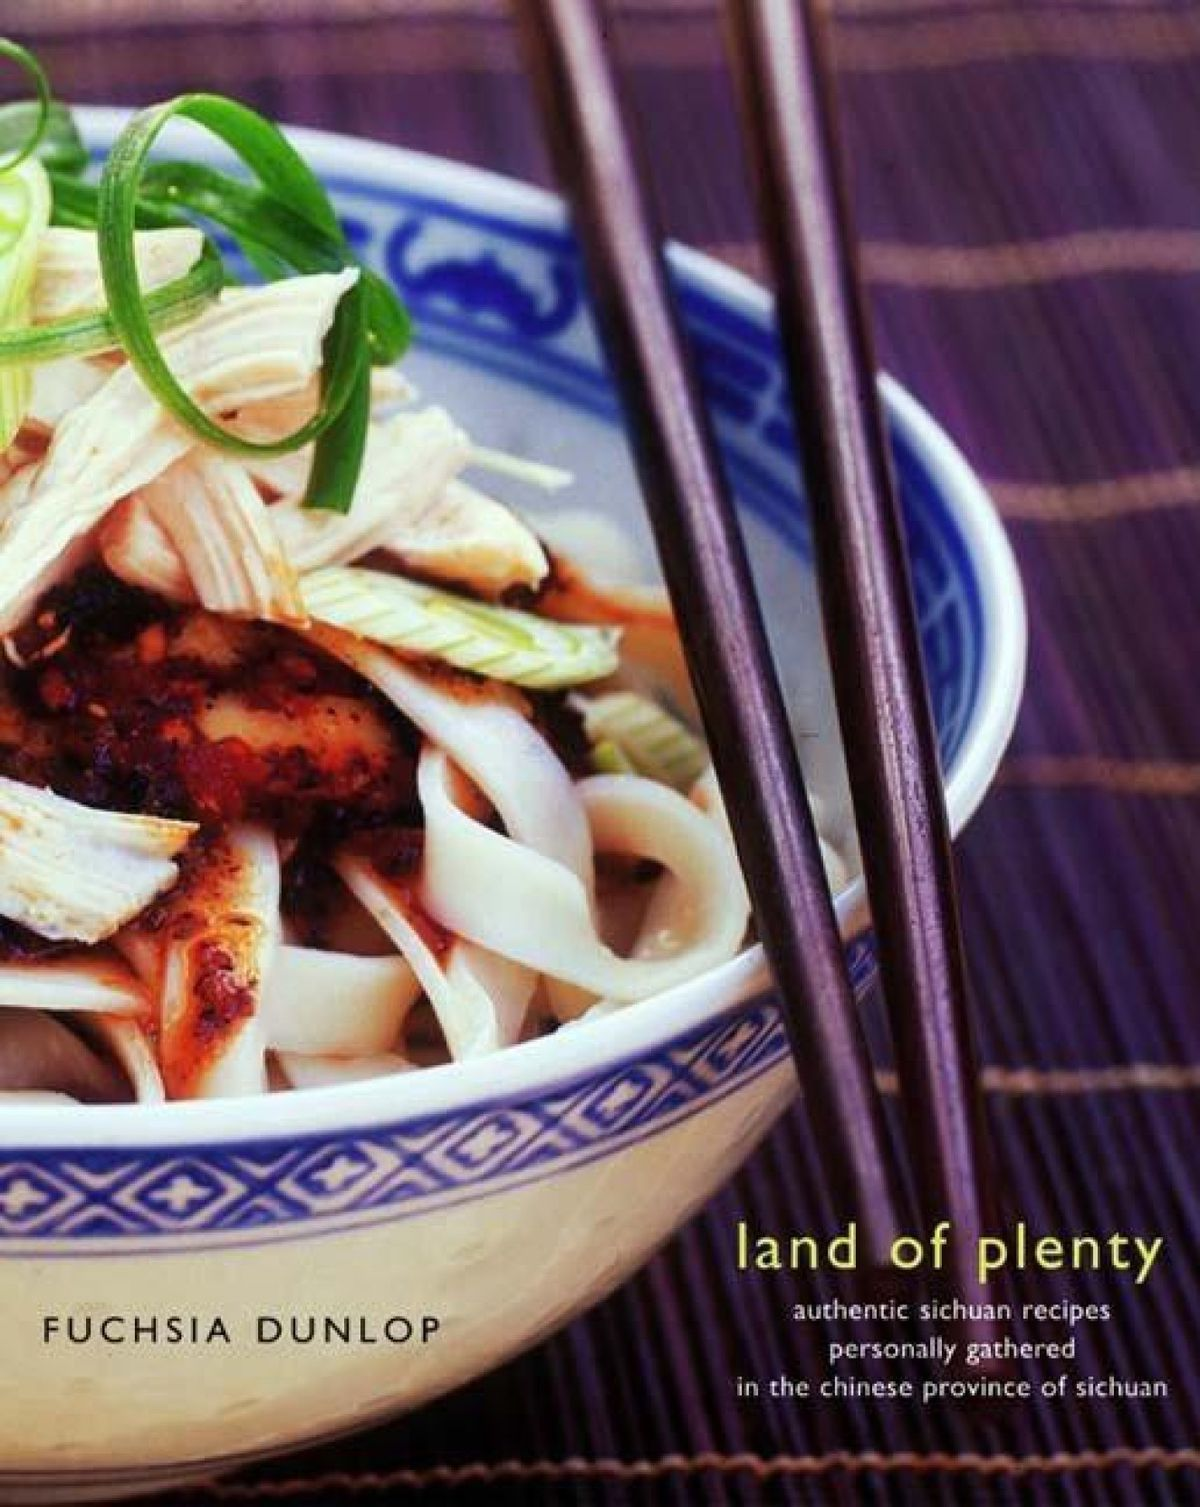 Land of Plenty by Fuchsia Dunlop, one of the best cookbooks chosen by Eater writers